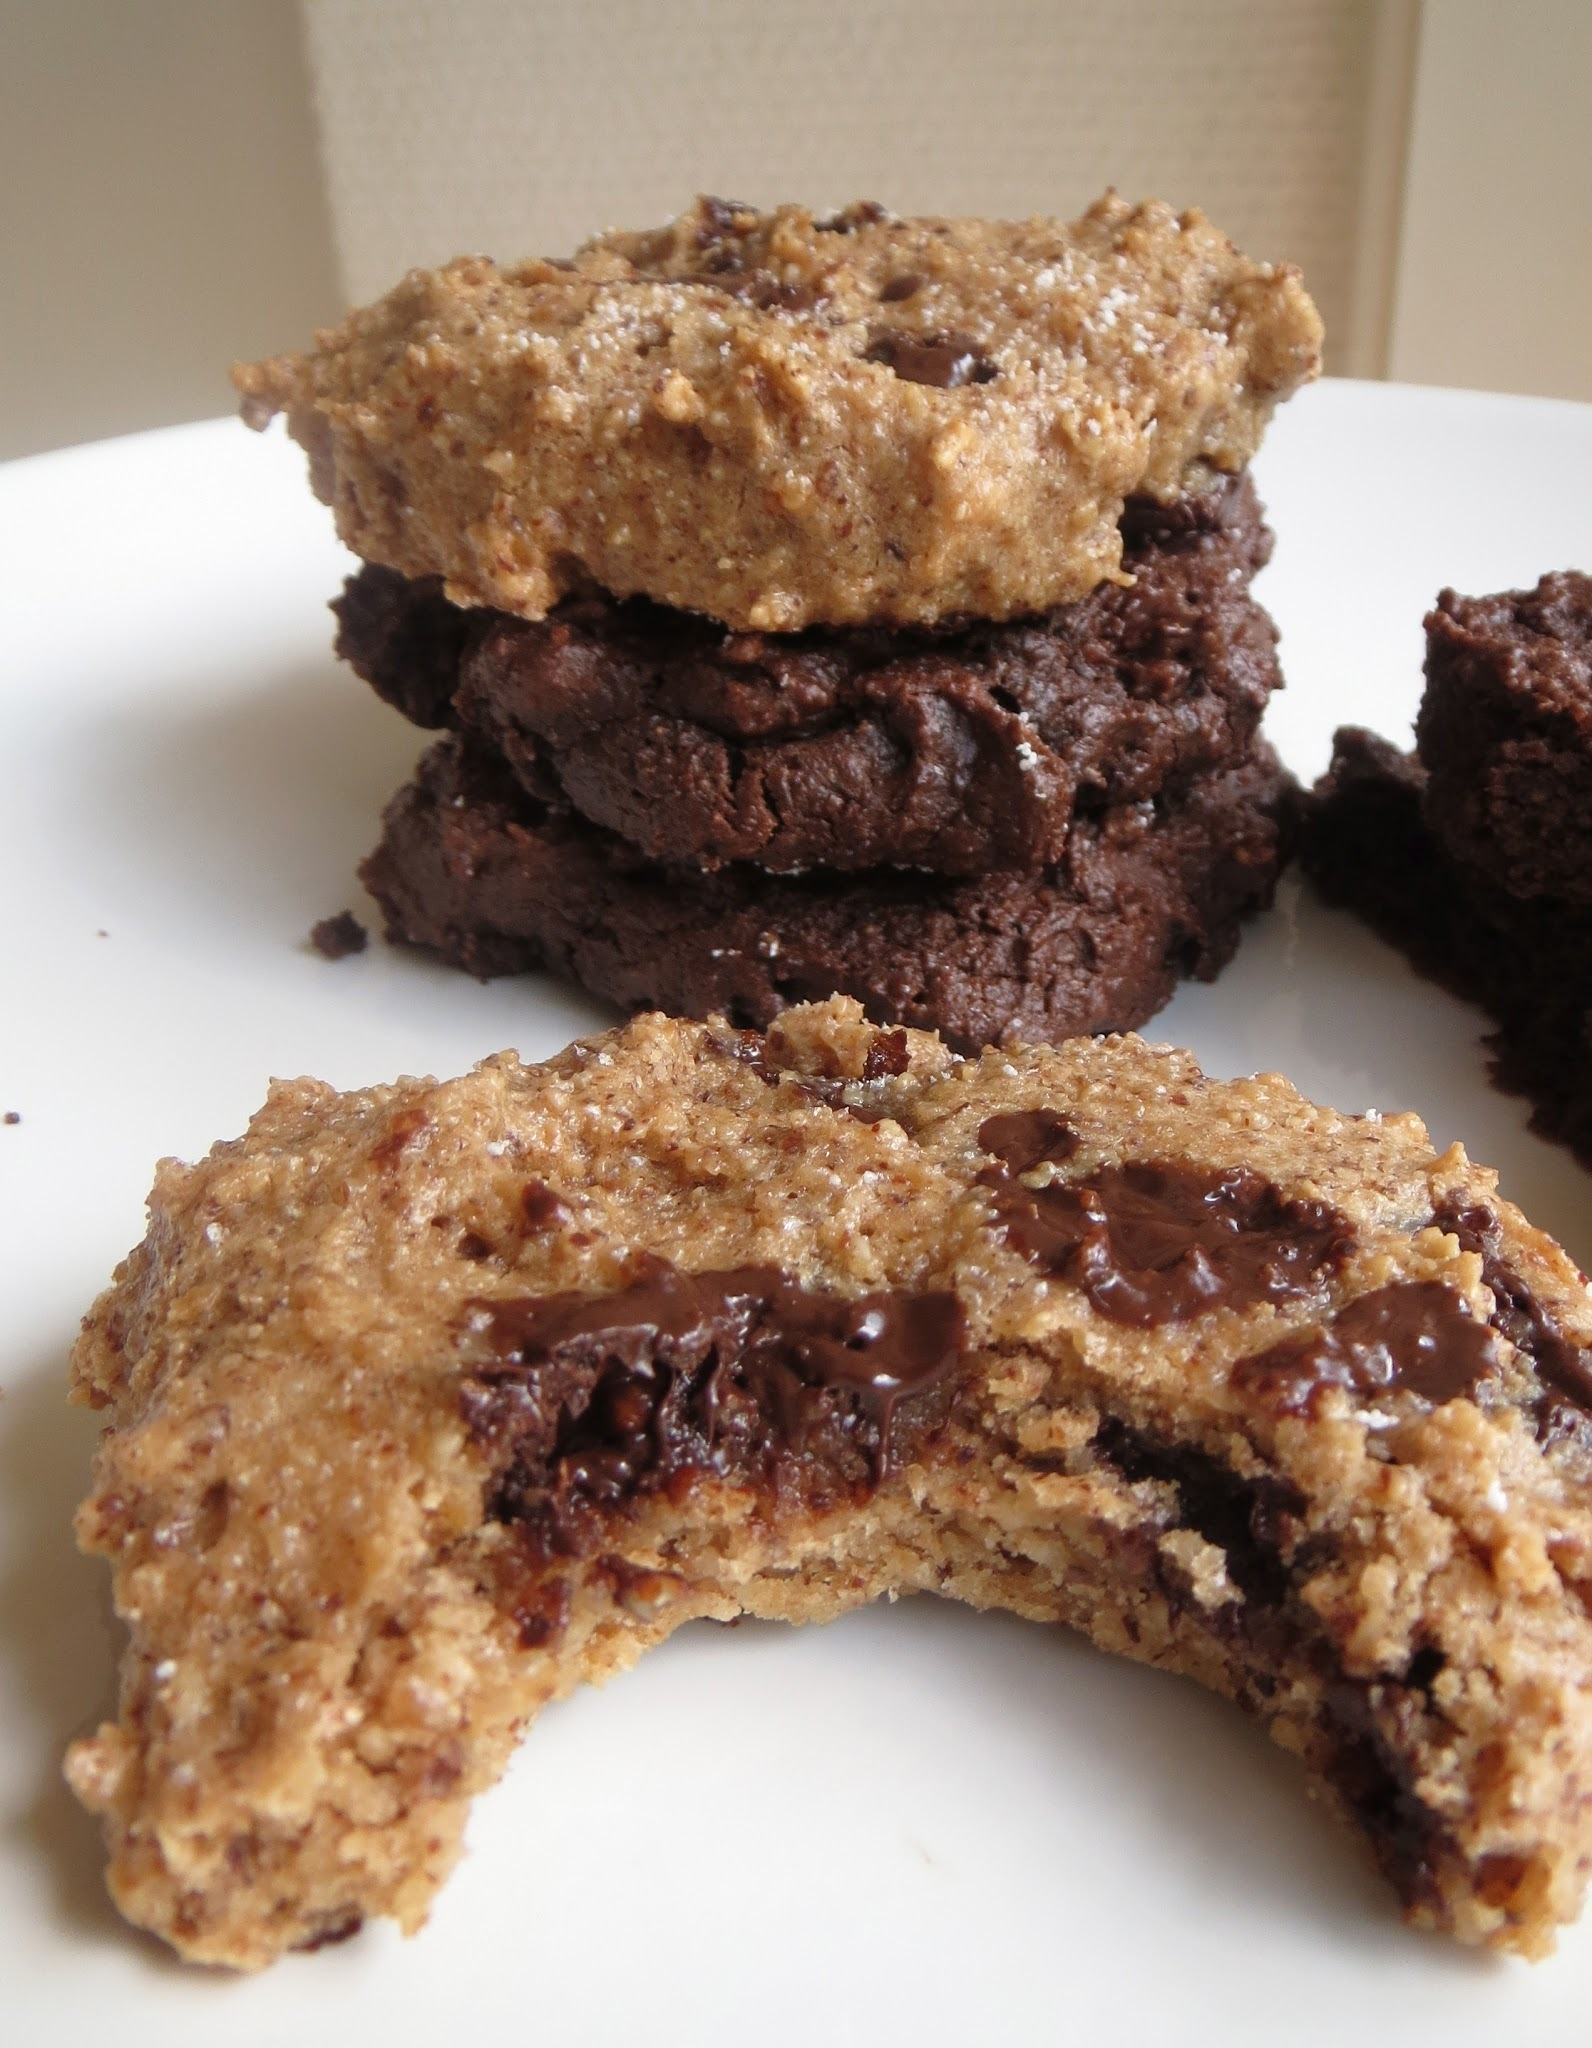 LCHF Chocolate Chip Cookies